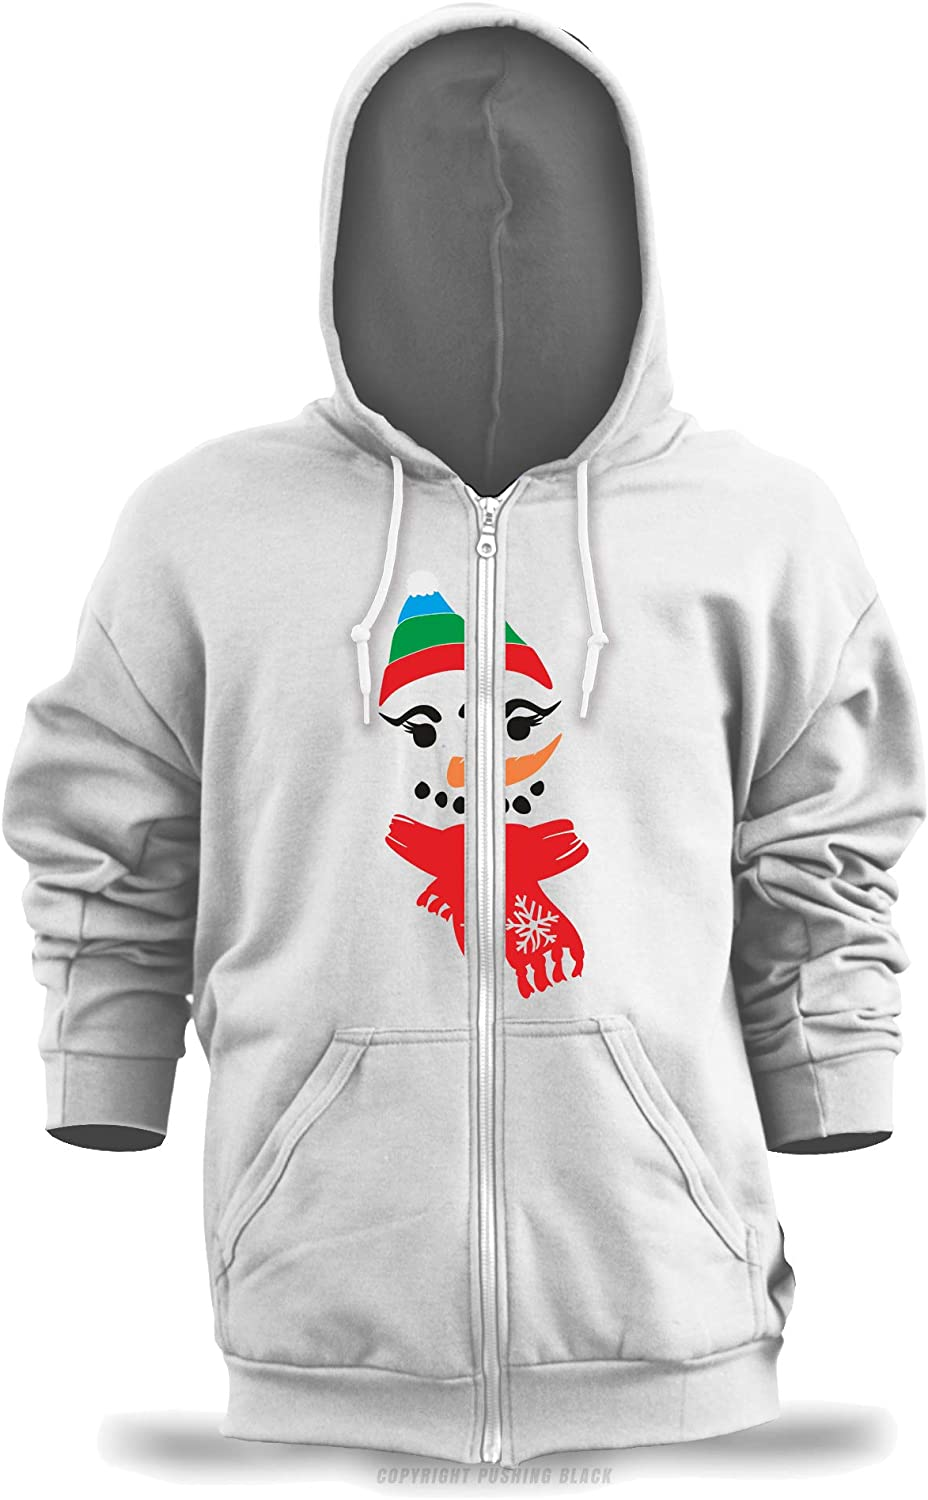 Smiling Snowman with Hat and Scarf Unisex Zipper Hoodie